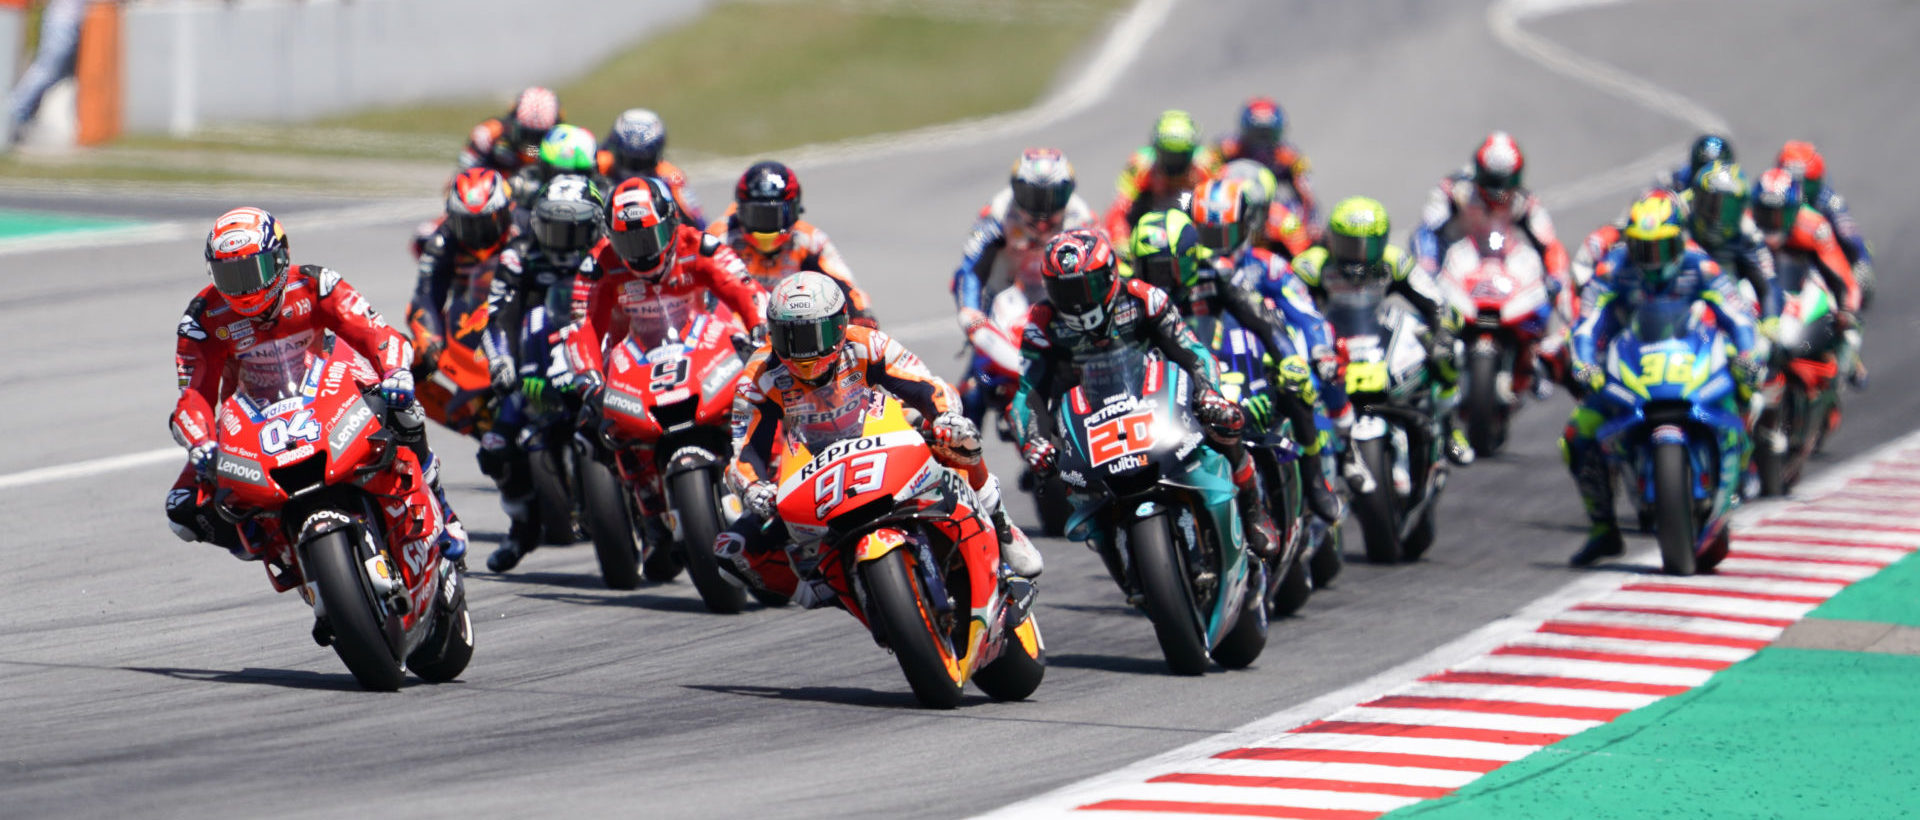 The start of the MotoGP race at Catalunya in 2019. Photo courtesy Dorna.